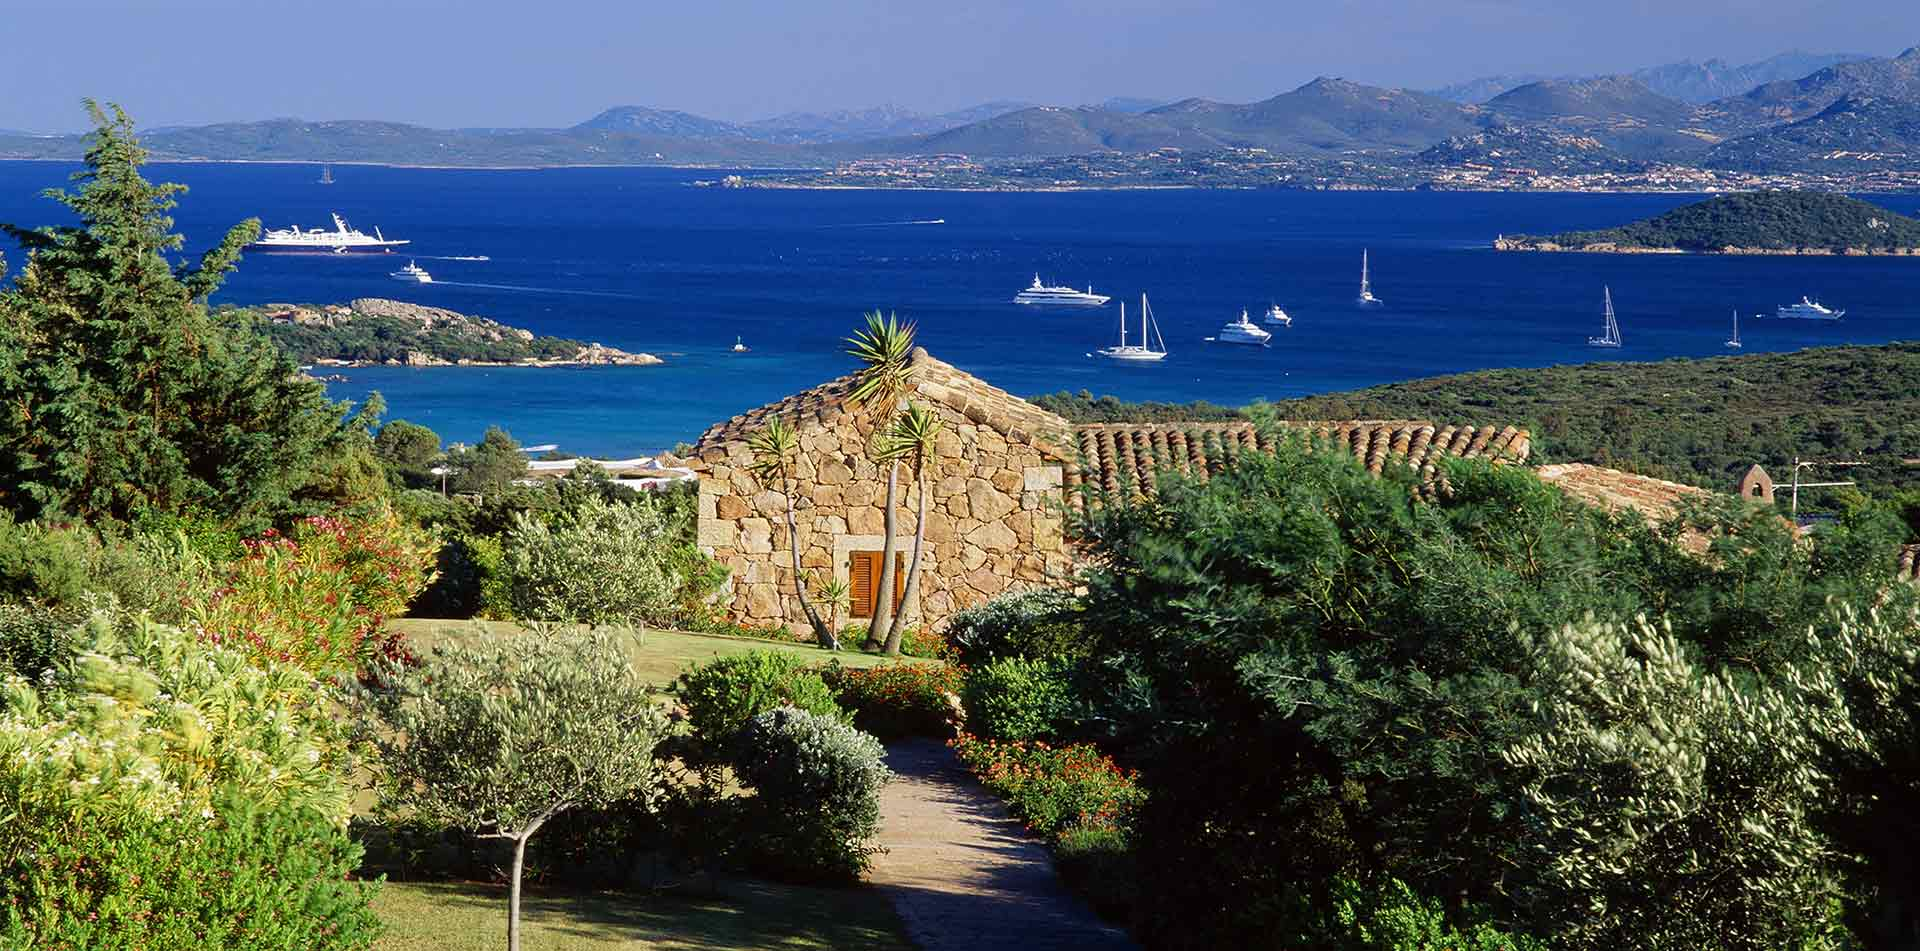 Europe Italy Sardinia rustic villa overlooking the harbor with sailboats and yachts - luxury vacation destinations